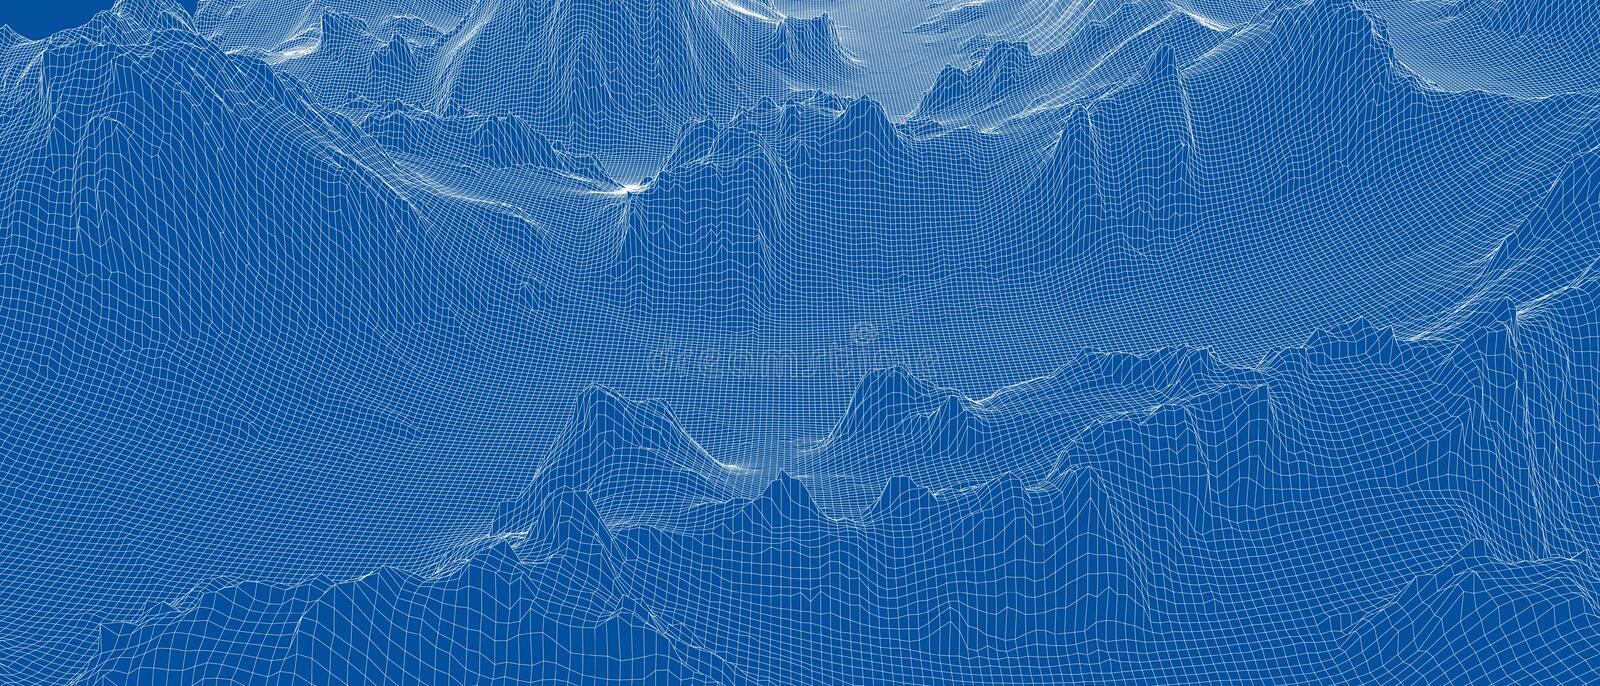 Abstract 3d wire-frame landscape. Blueprint style royalty free stock image